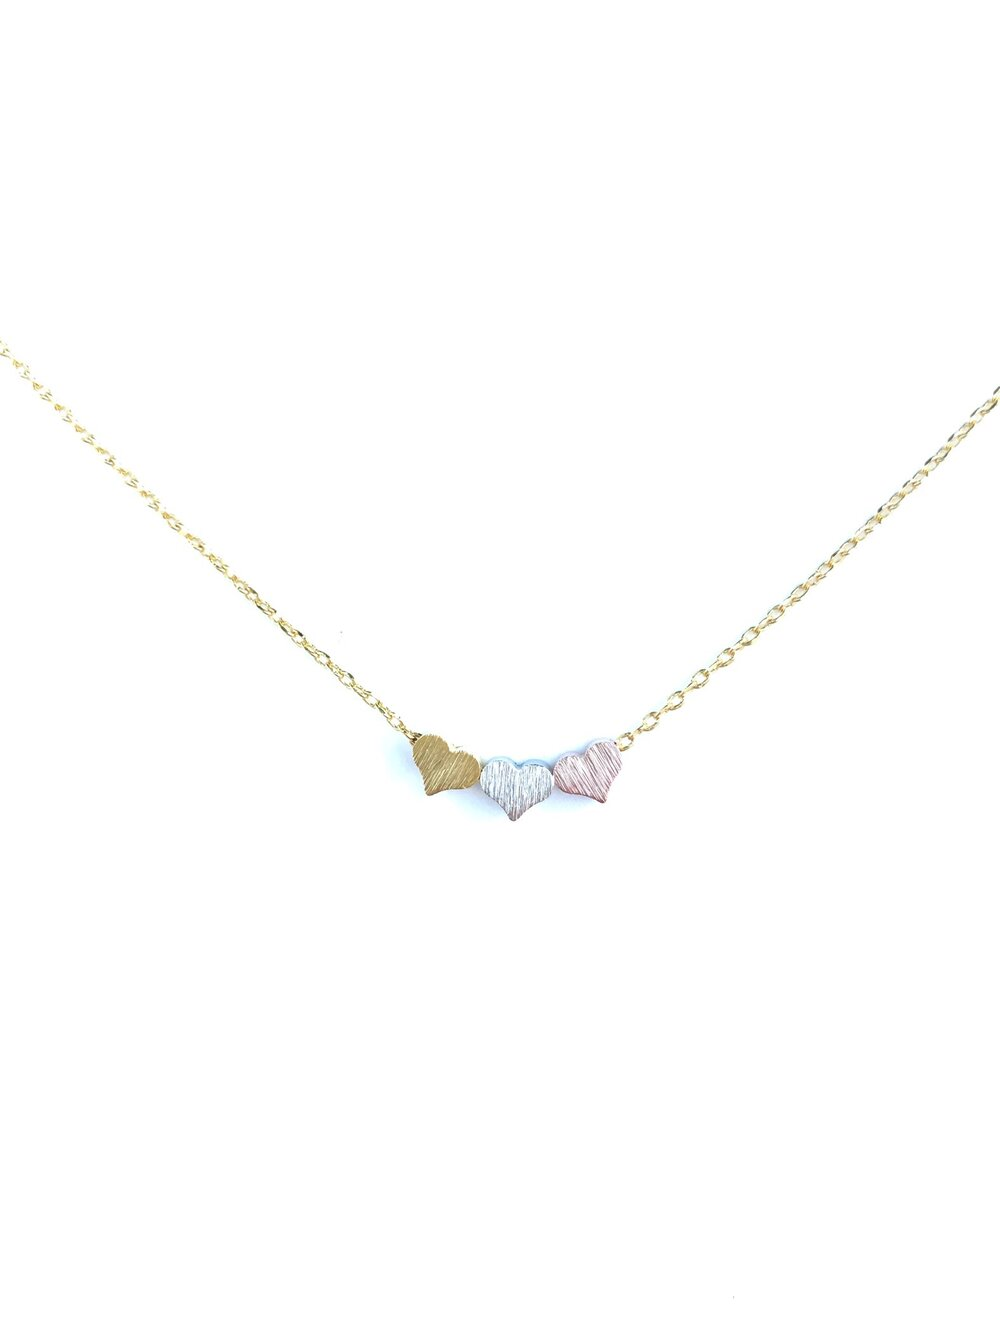 Triple Heart Dainty Necklace - Gold